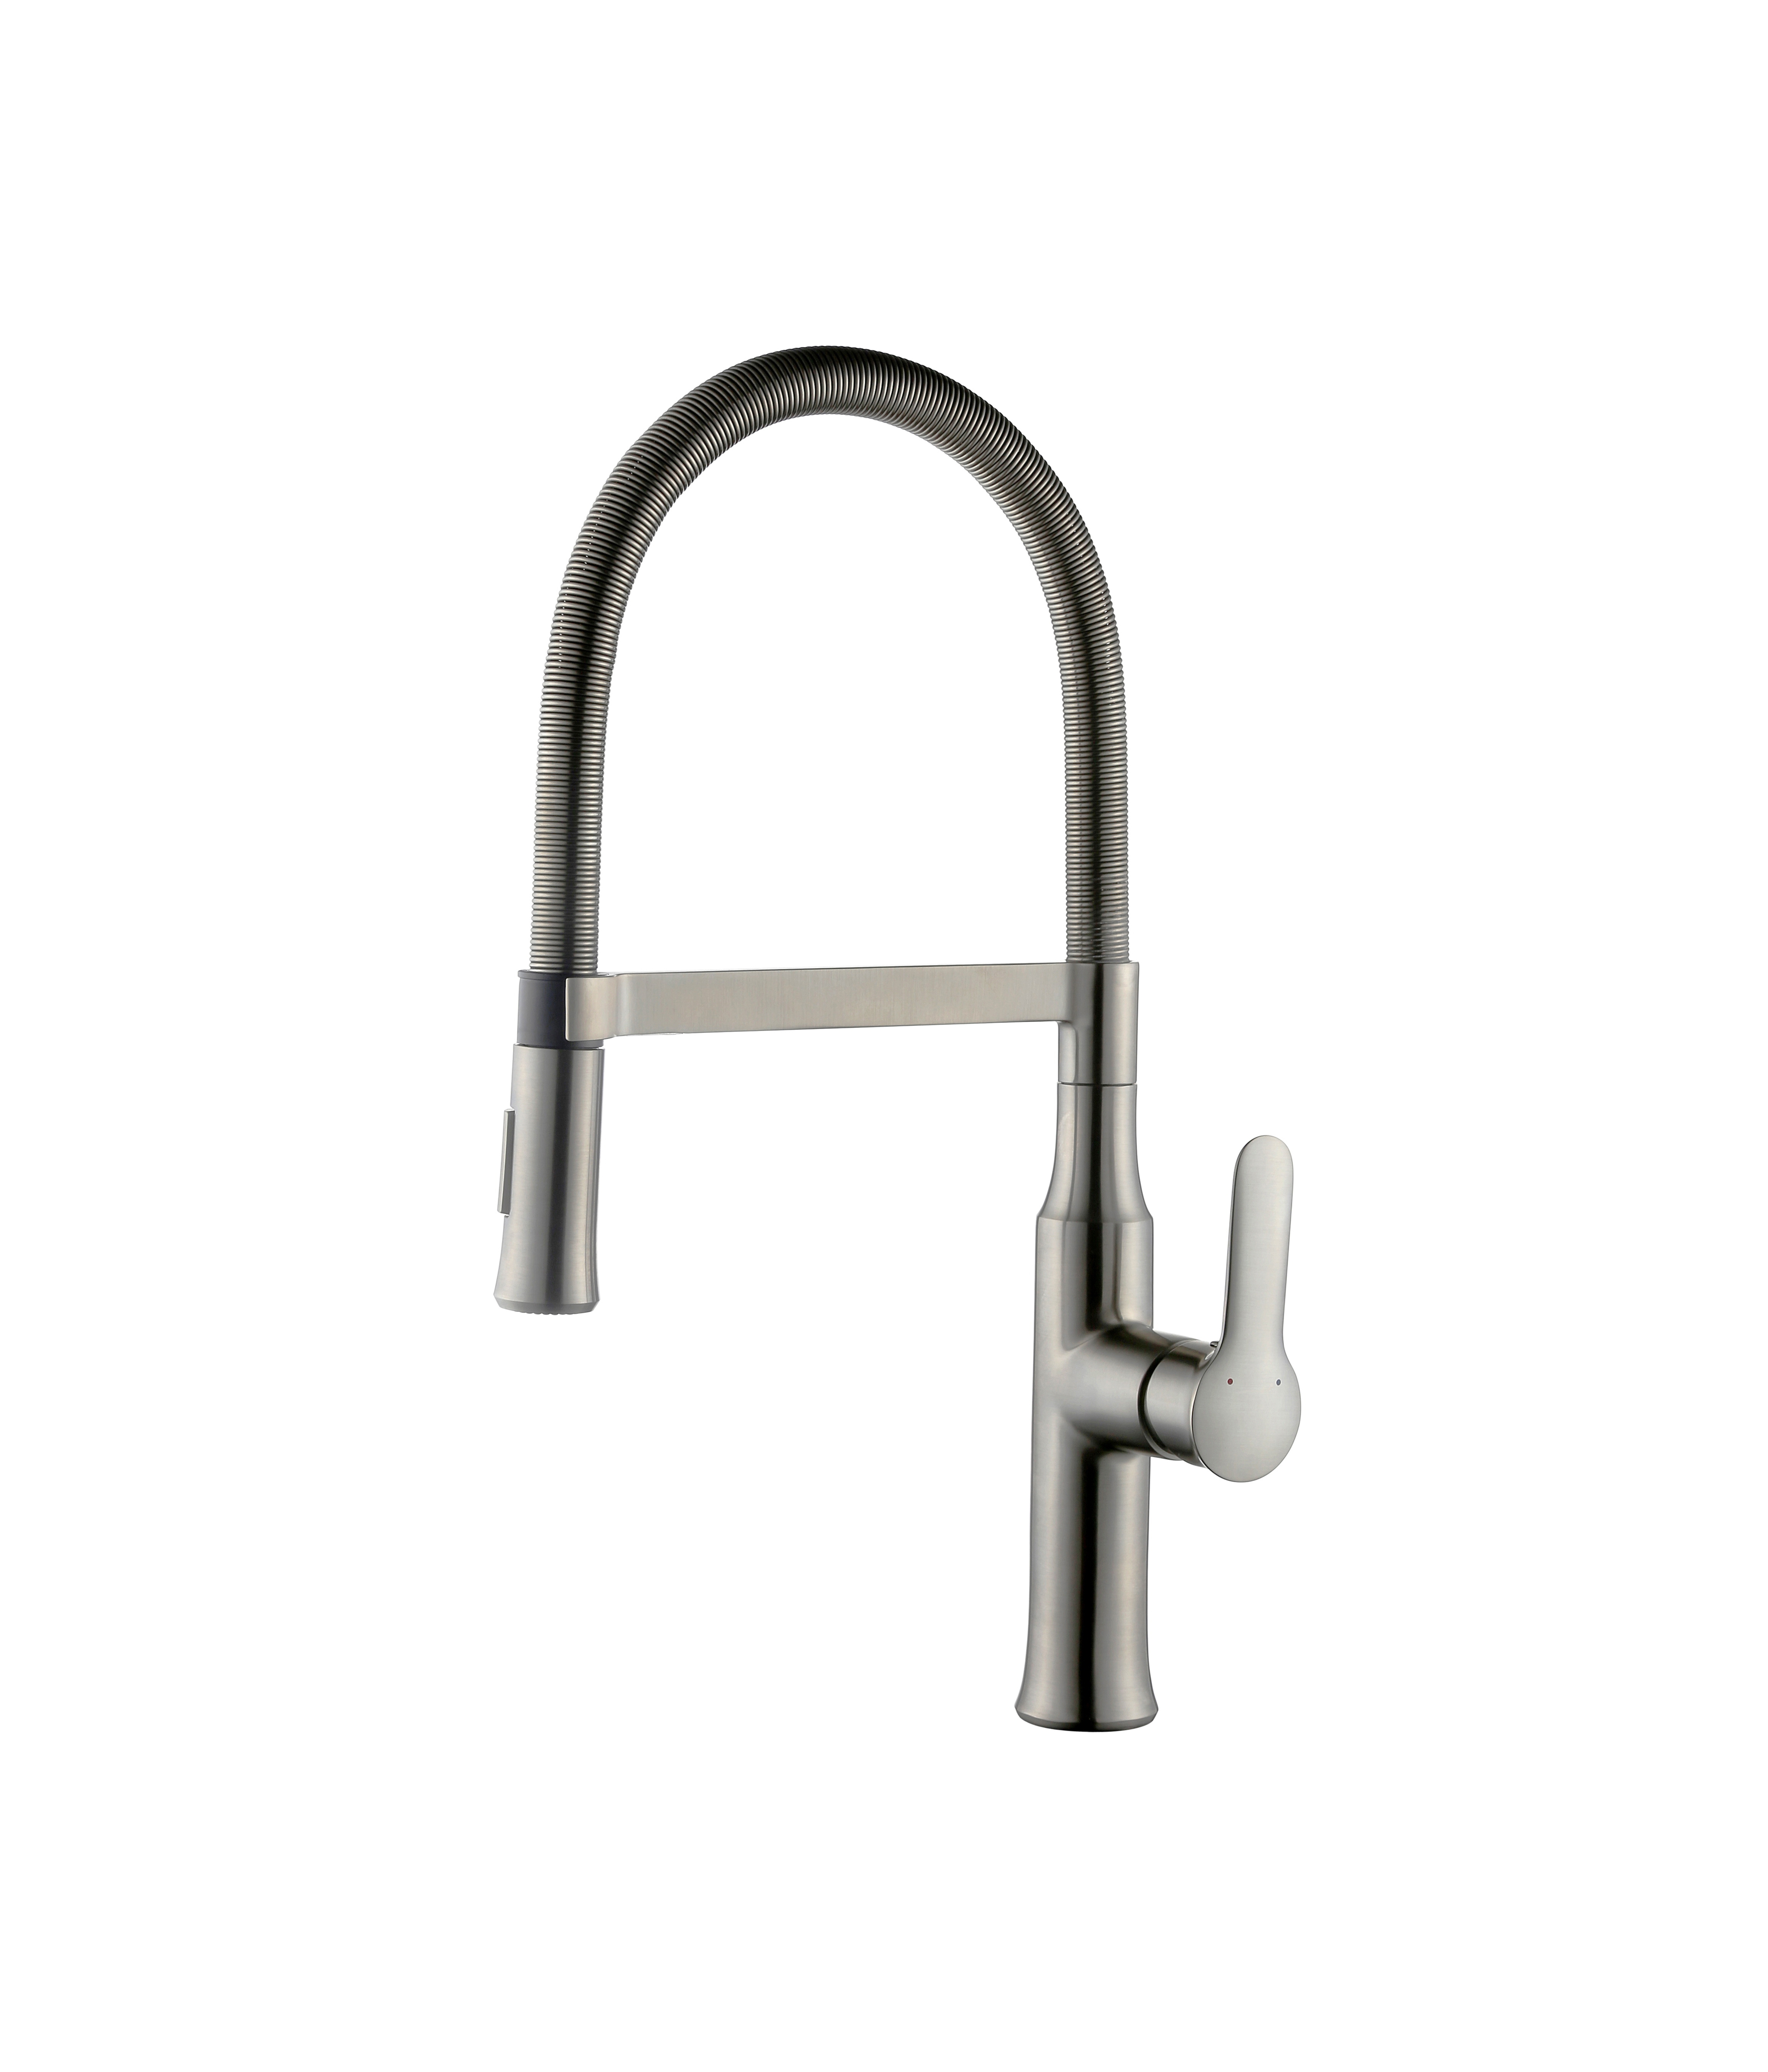 Ideas, a 730 bn magnetic single handle brushed nickel kitchen faucet regarding proportions 4608 x 5400  .